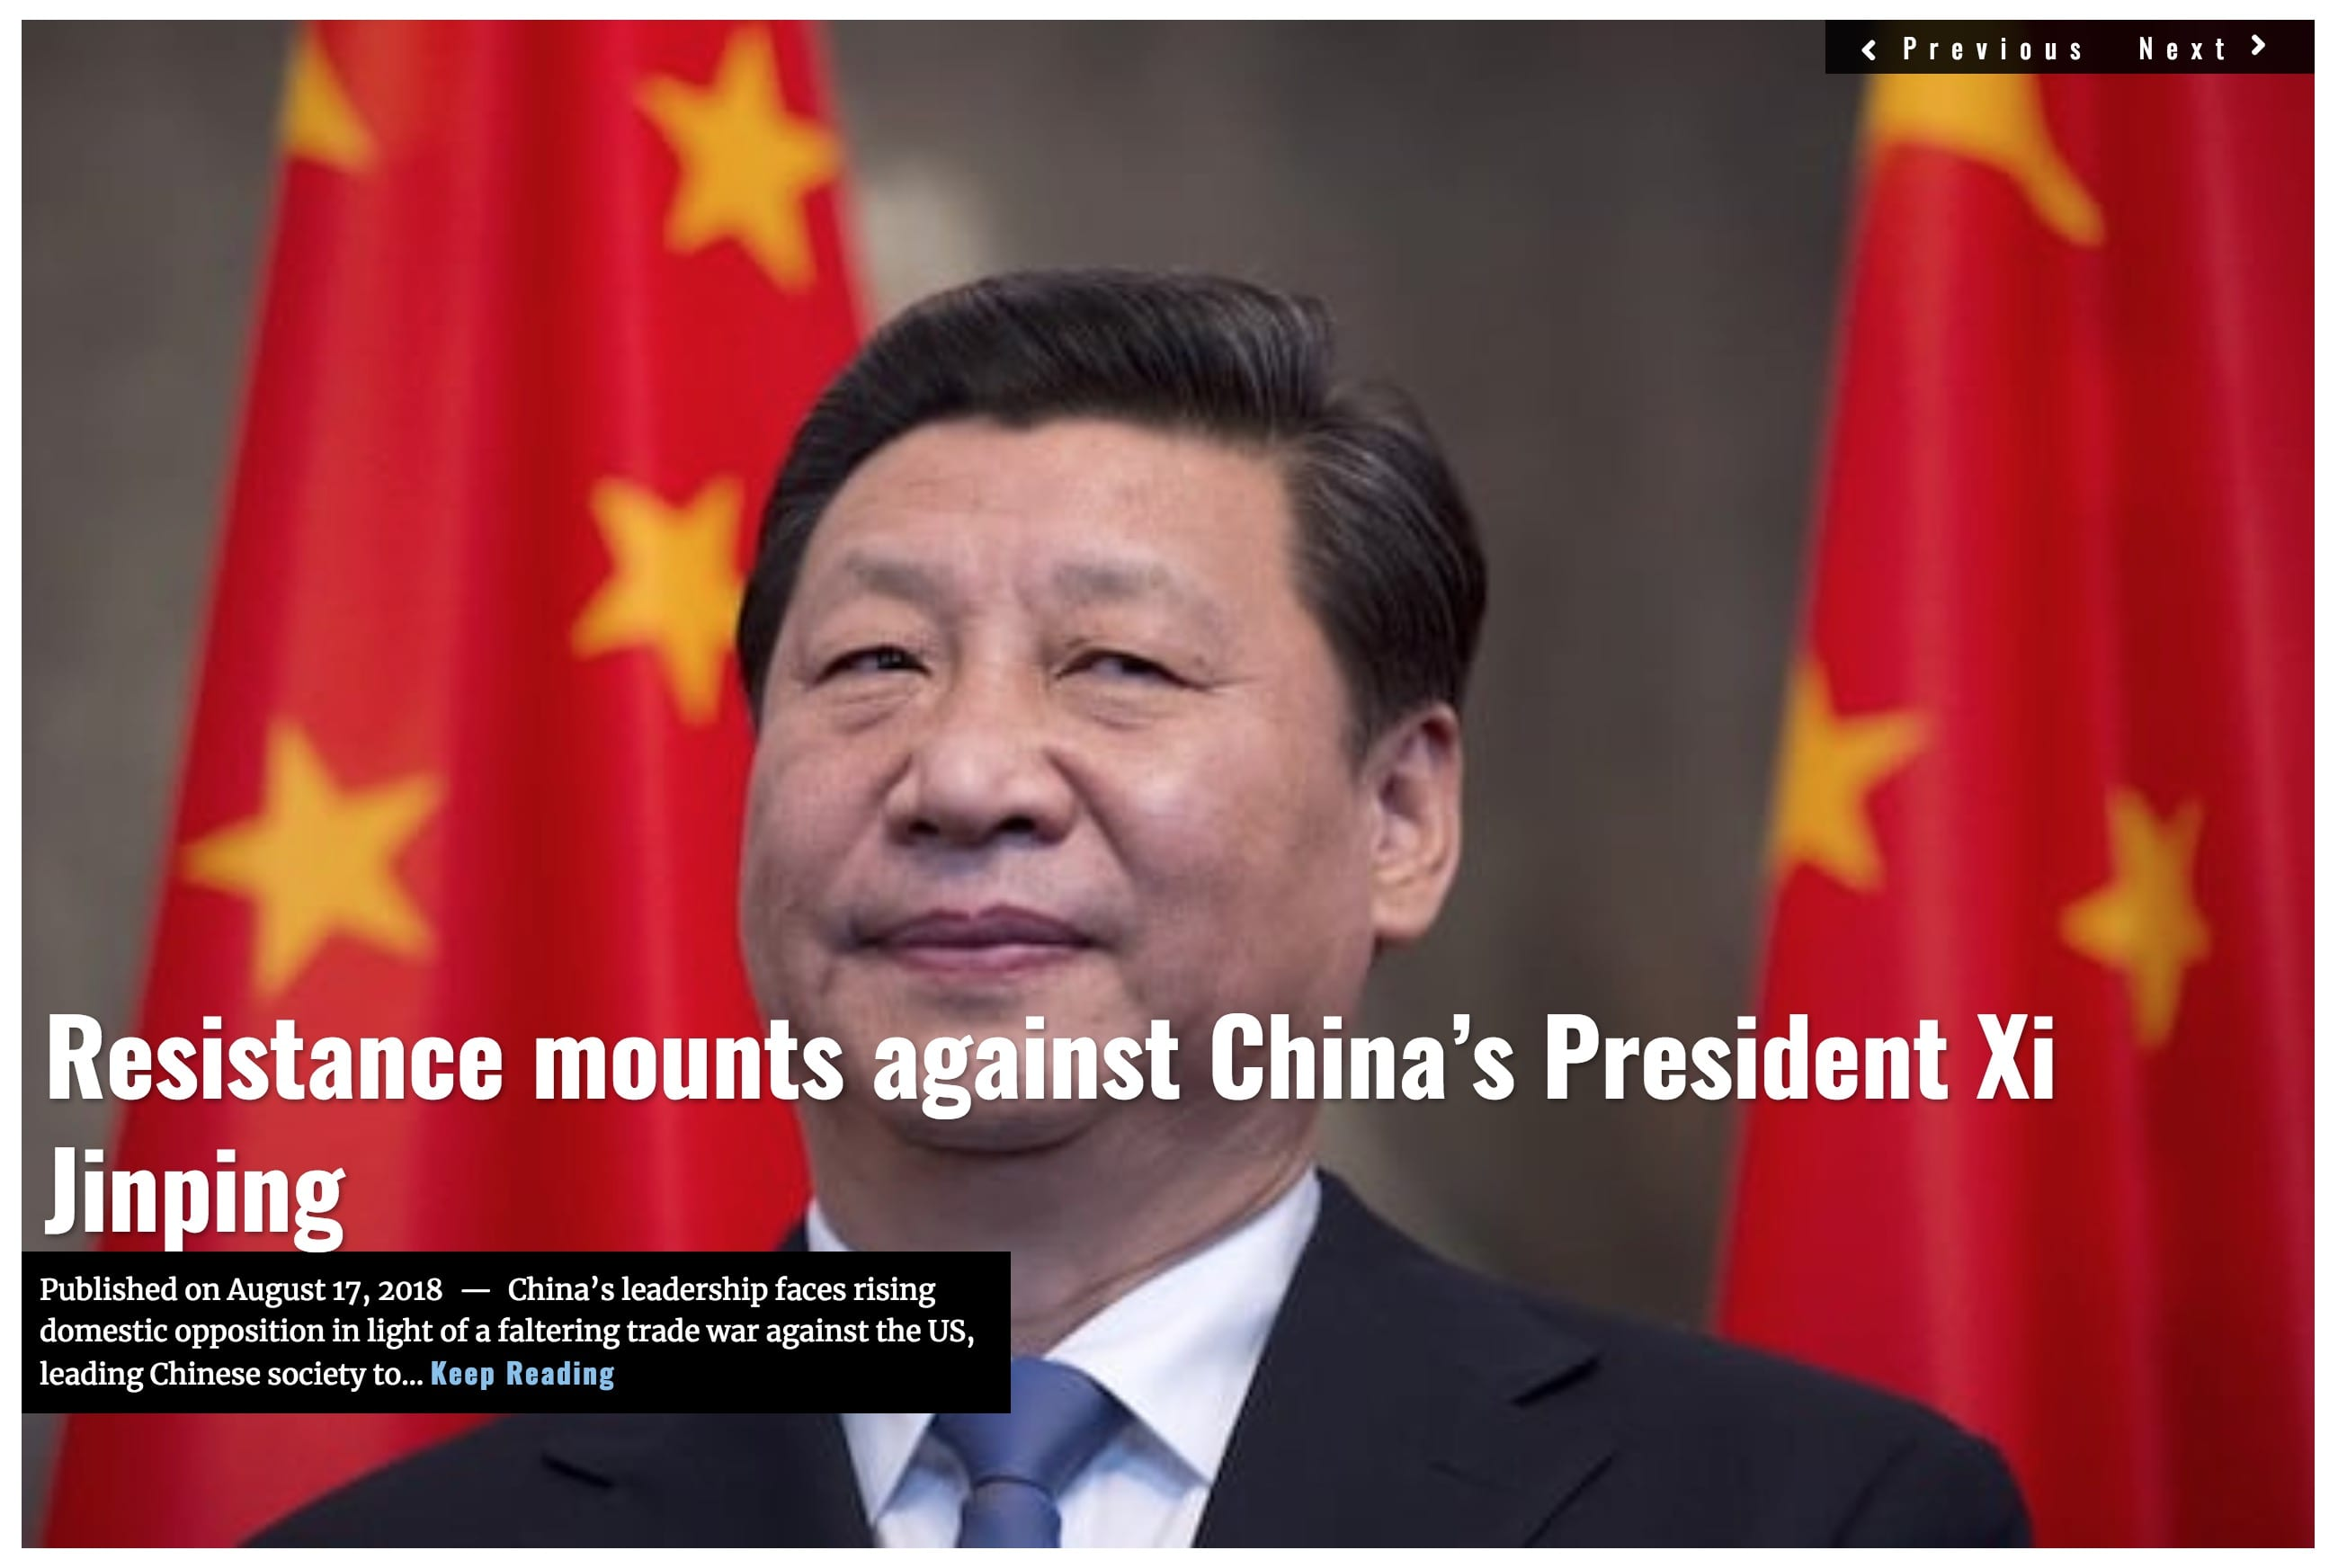 Image Lima Charlie News Headline China resistence J.Sjoholm AUG 17 2018